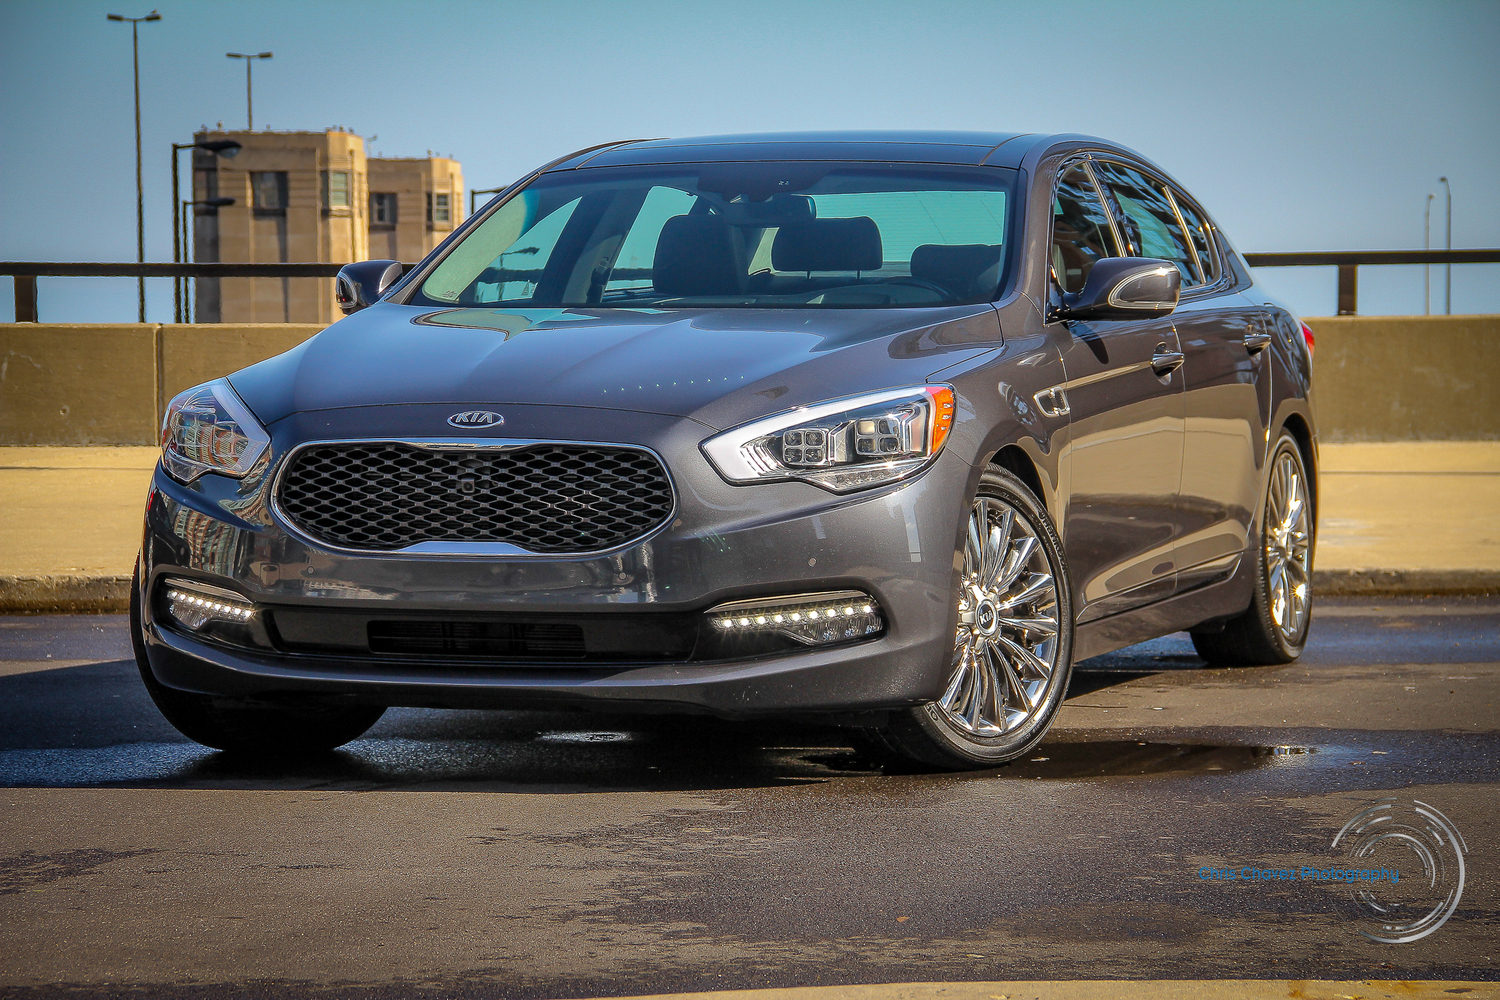 exterior new car cost release models price date kia and specs